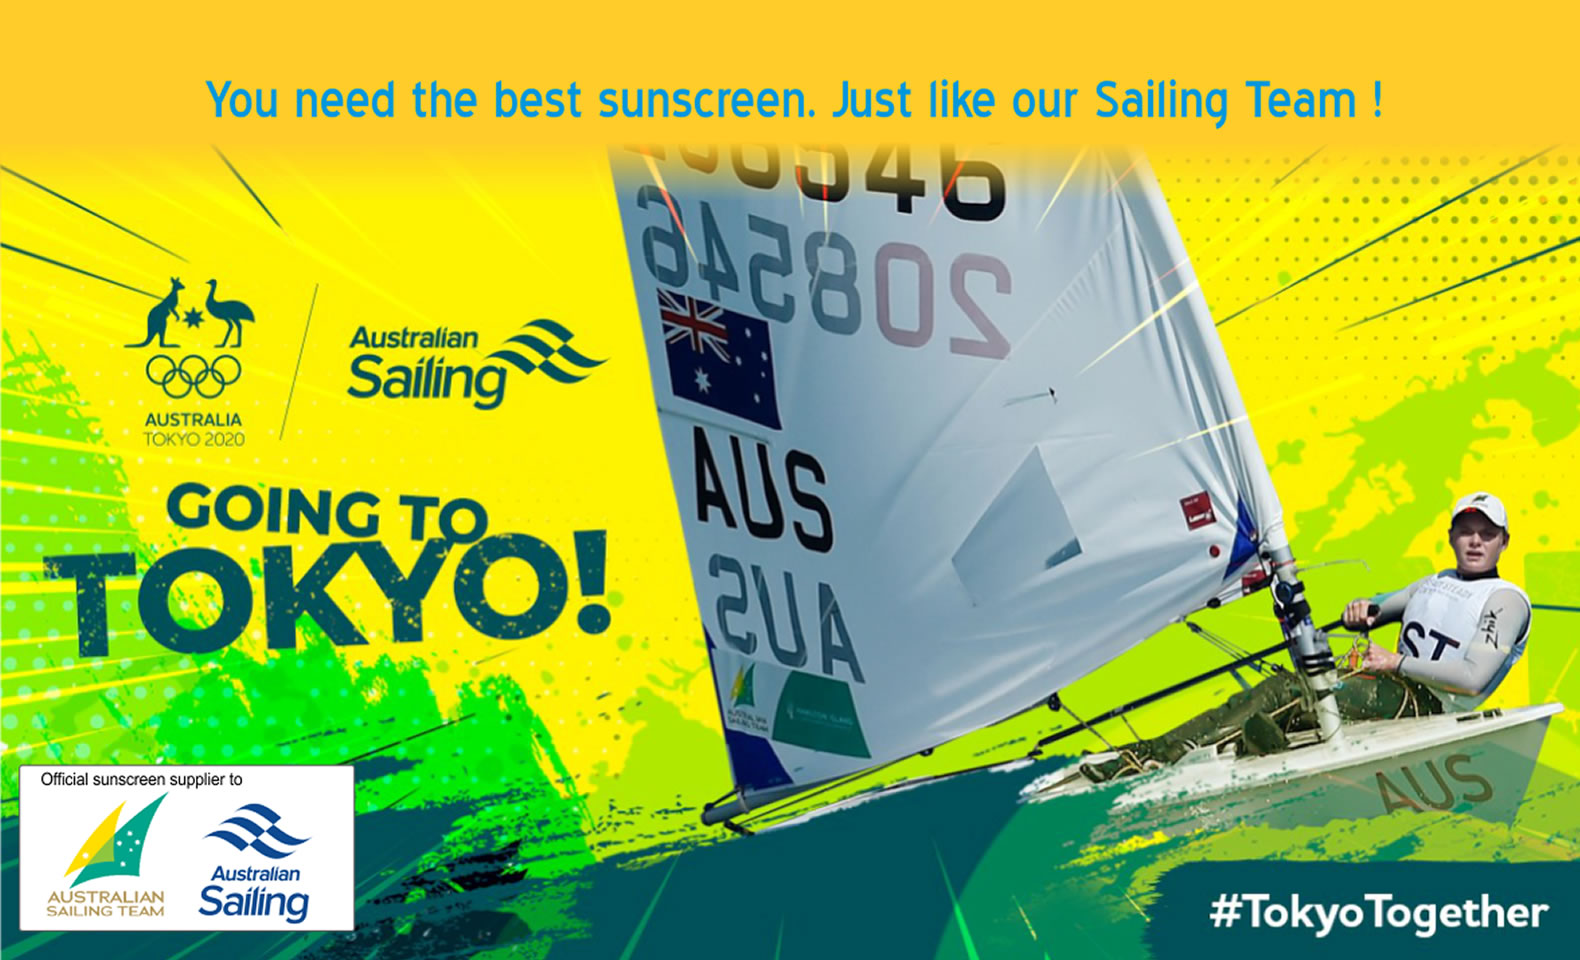 Sailor Sunscreen is an oficial sunscreen supplier for Australian Sailng Olympic team